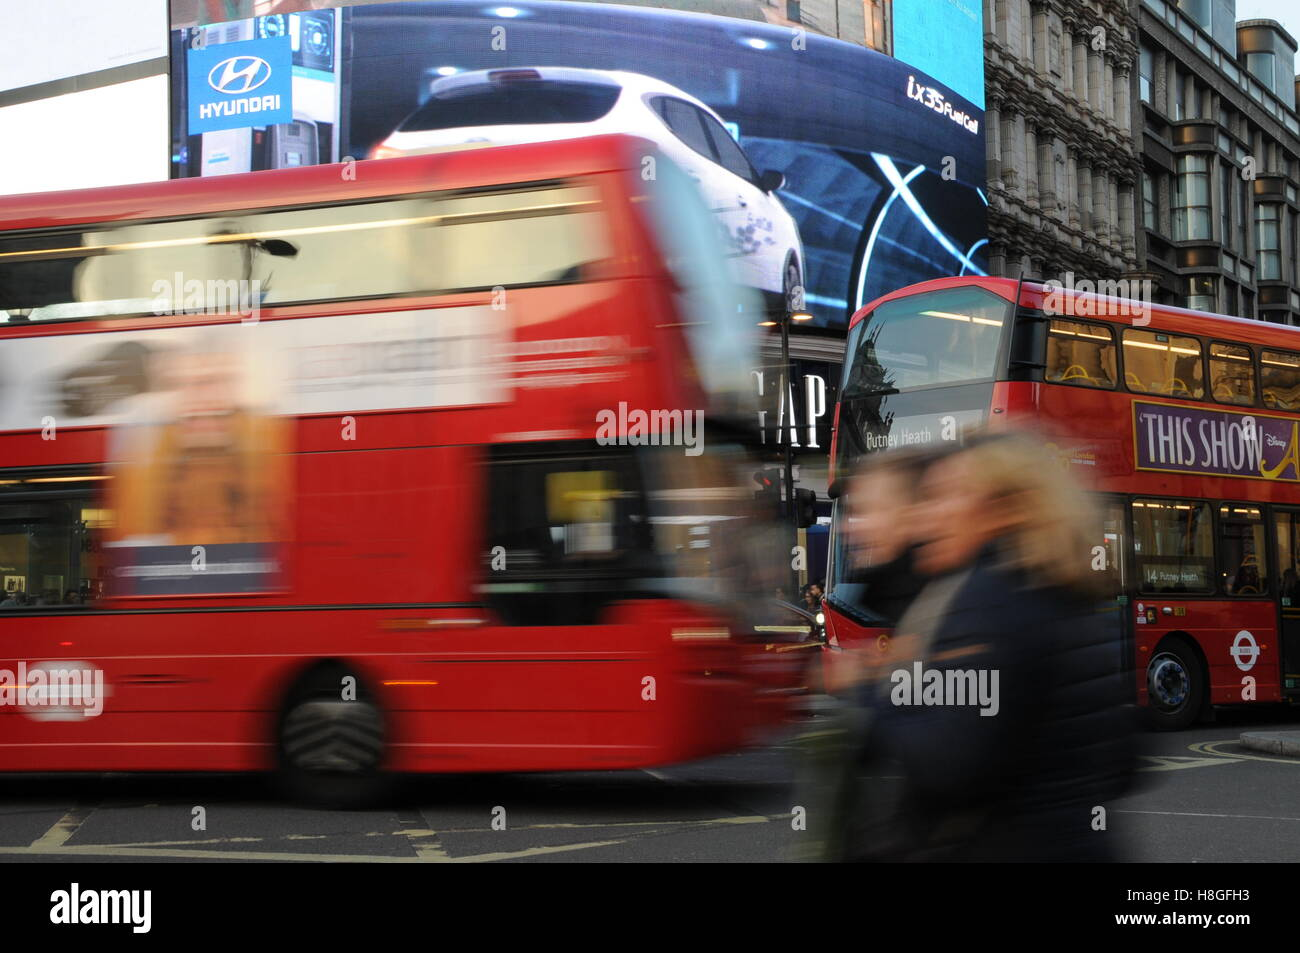 Red London bus in Piccadilly Circus. - Stock Image